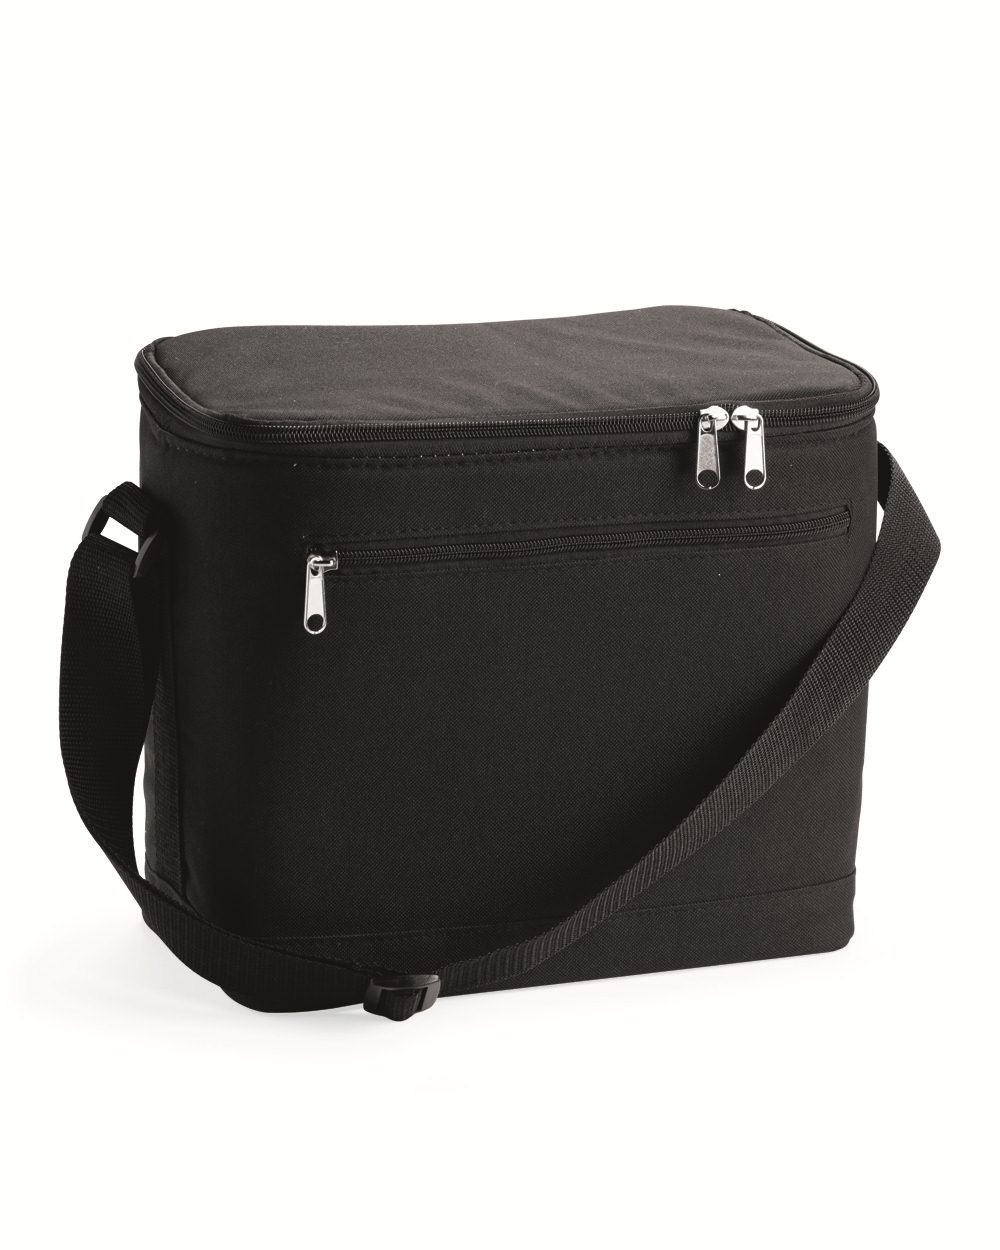 Liberty Bags Joseph Twelve-Pack Cooler - 1695